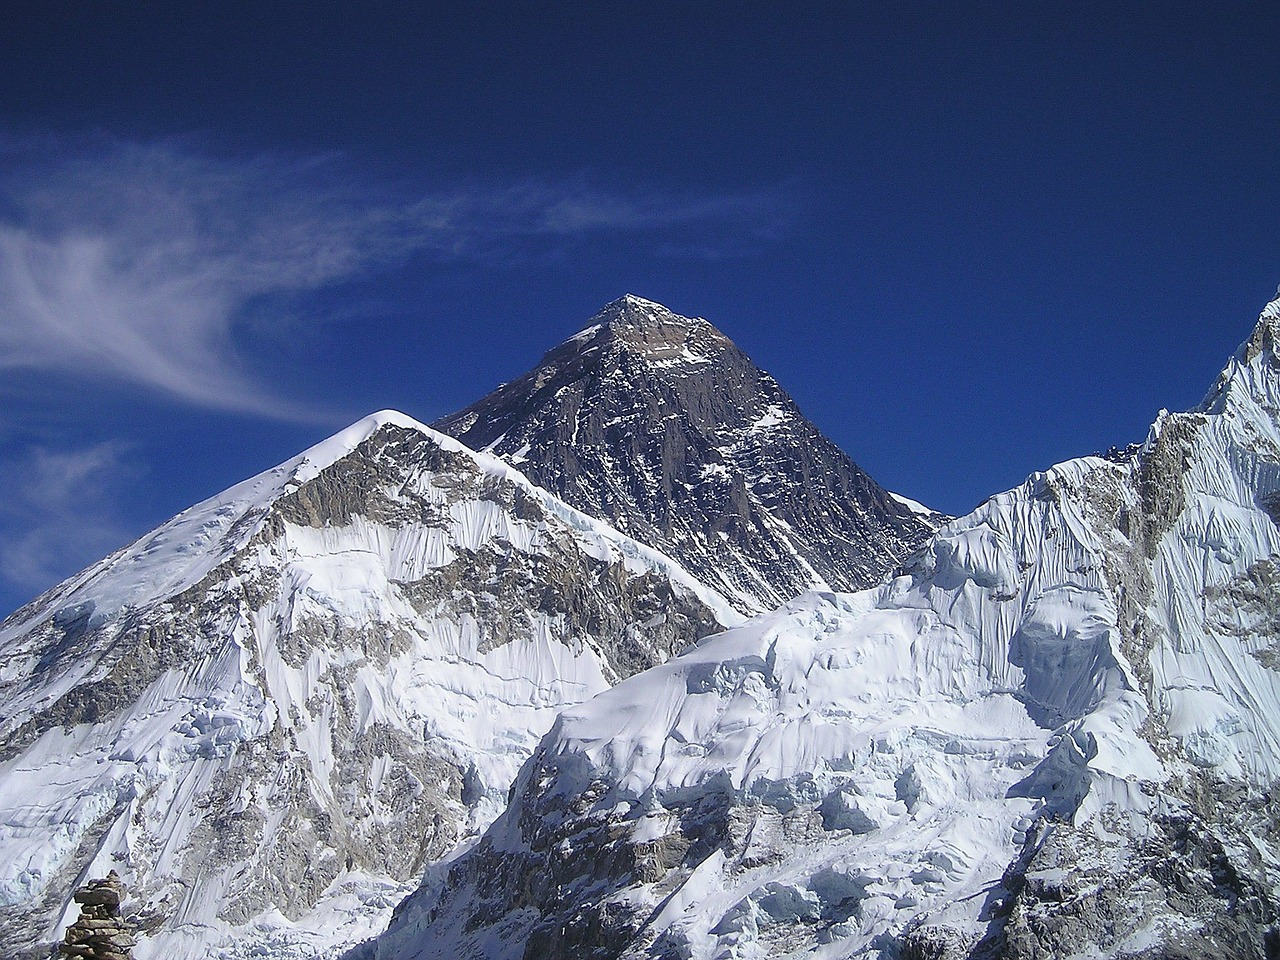 Trek to Mt. Everest Base Camp with GoSouthAsia